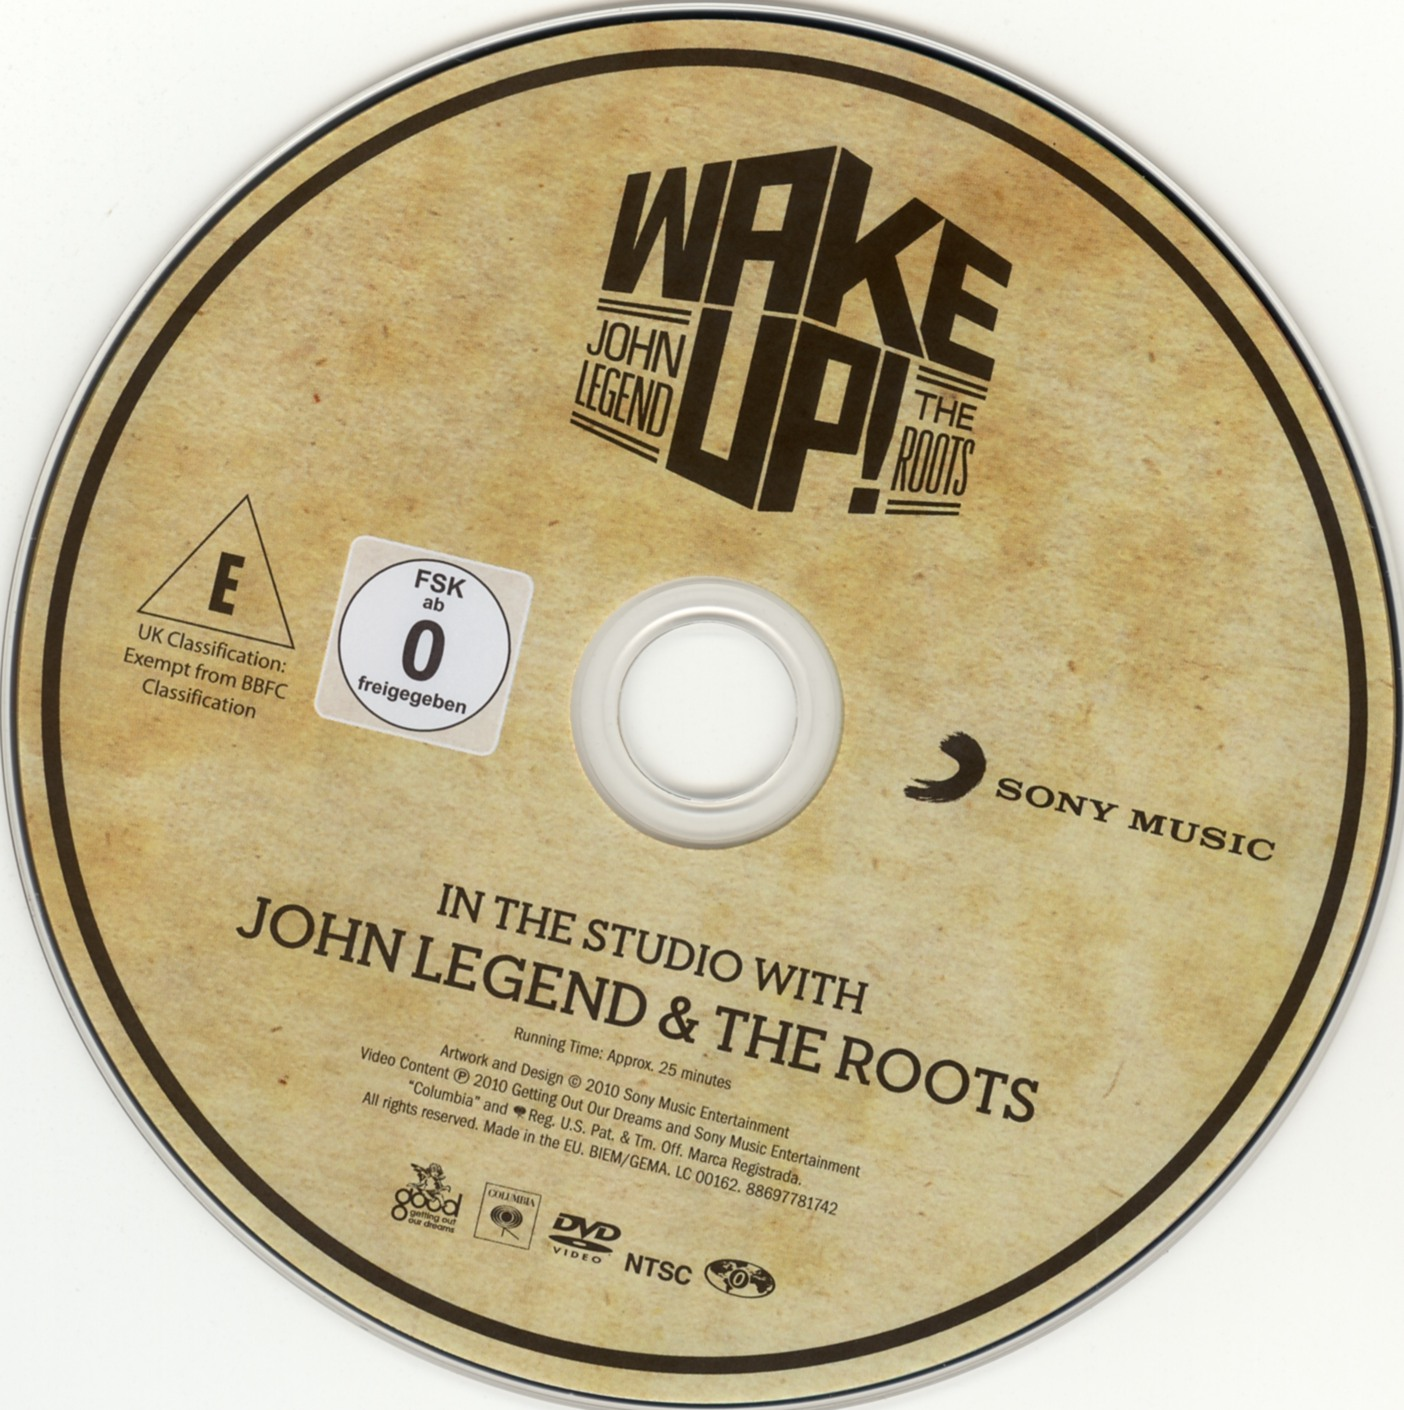 John Legend and The Roots - Wake Up - CD